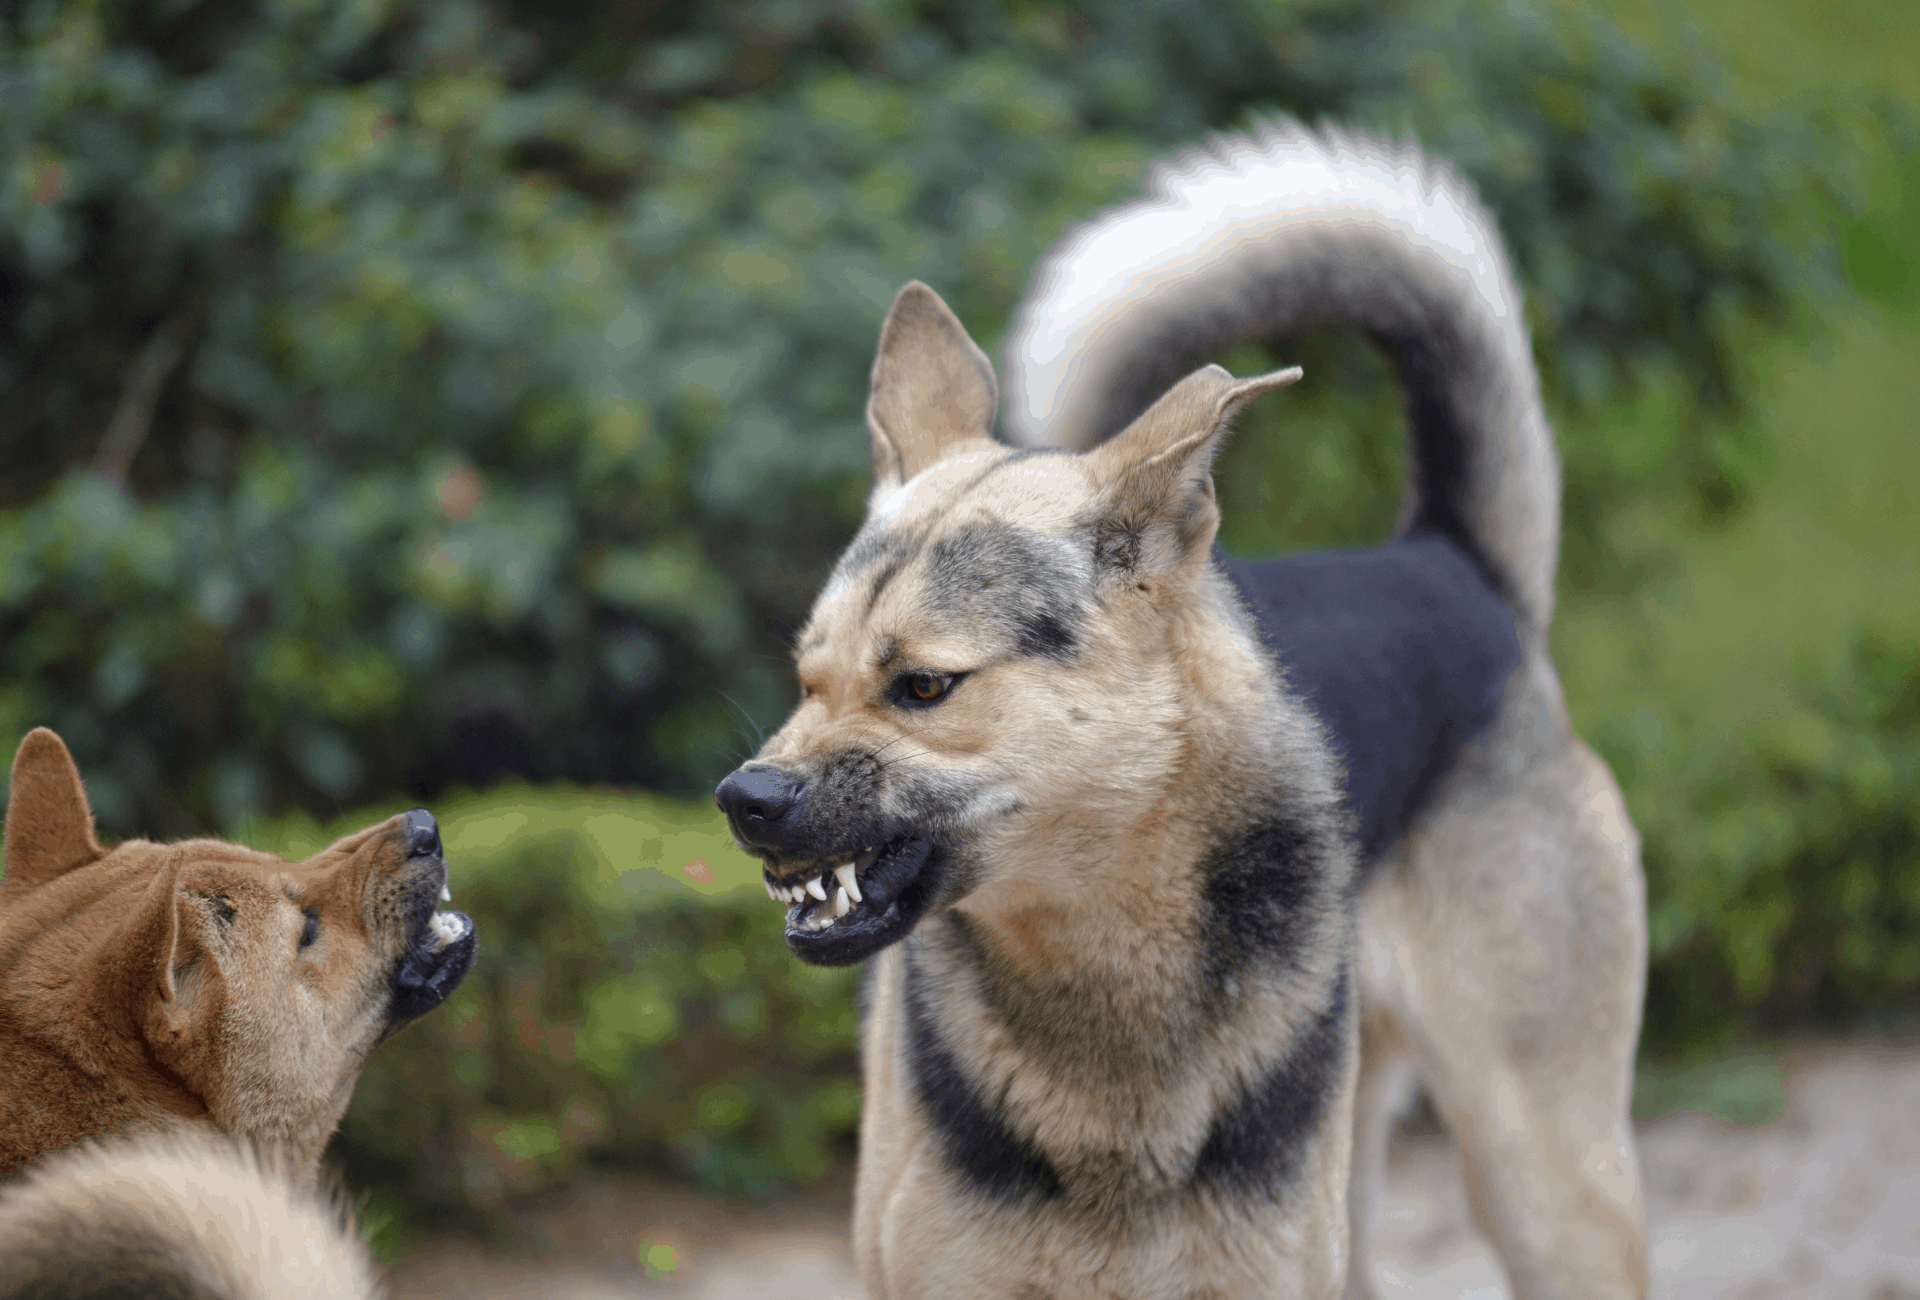 Two dogs snarling at each other, displaying their teeth as warning before the fight.